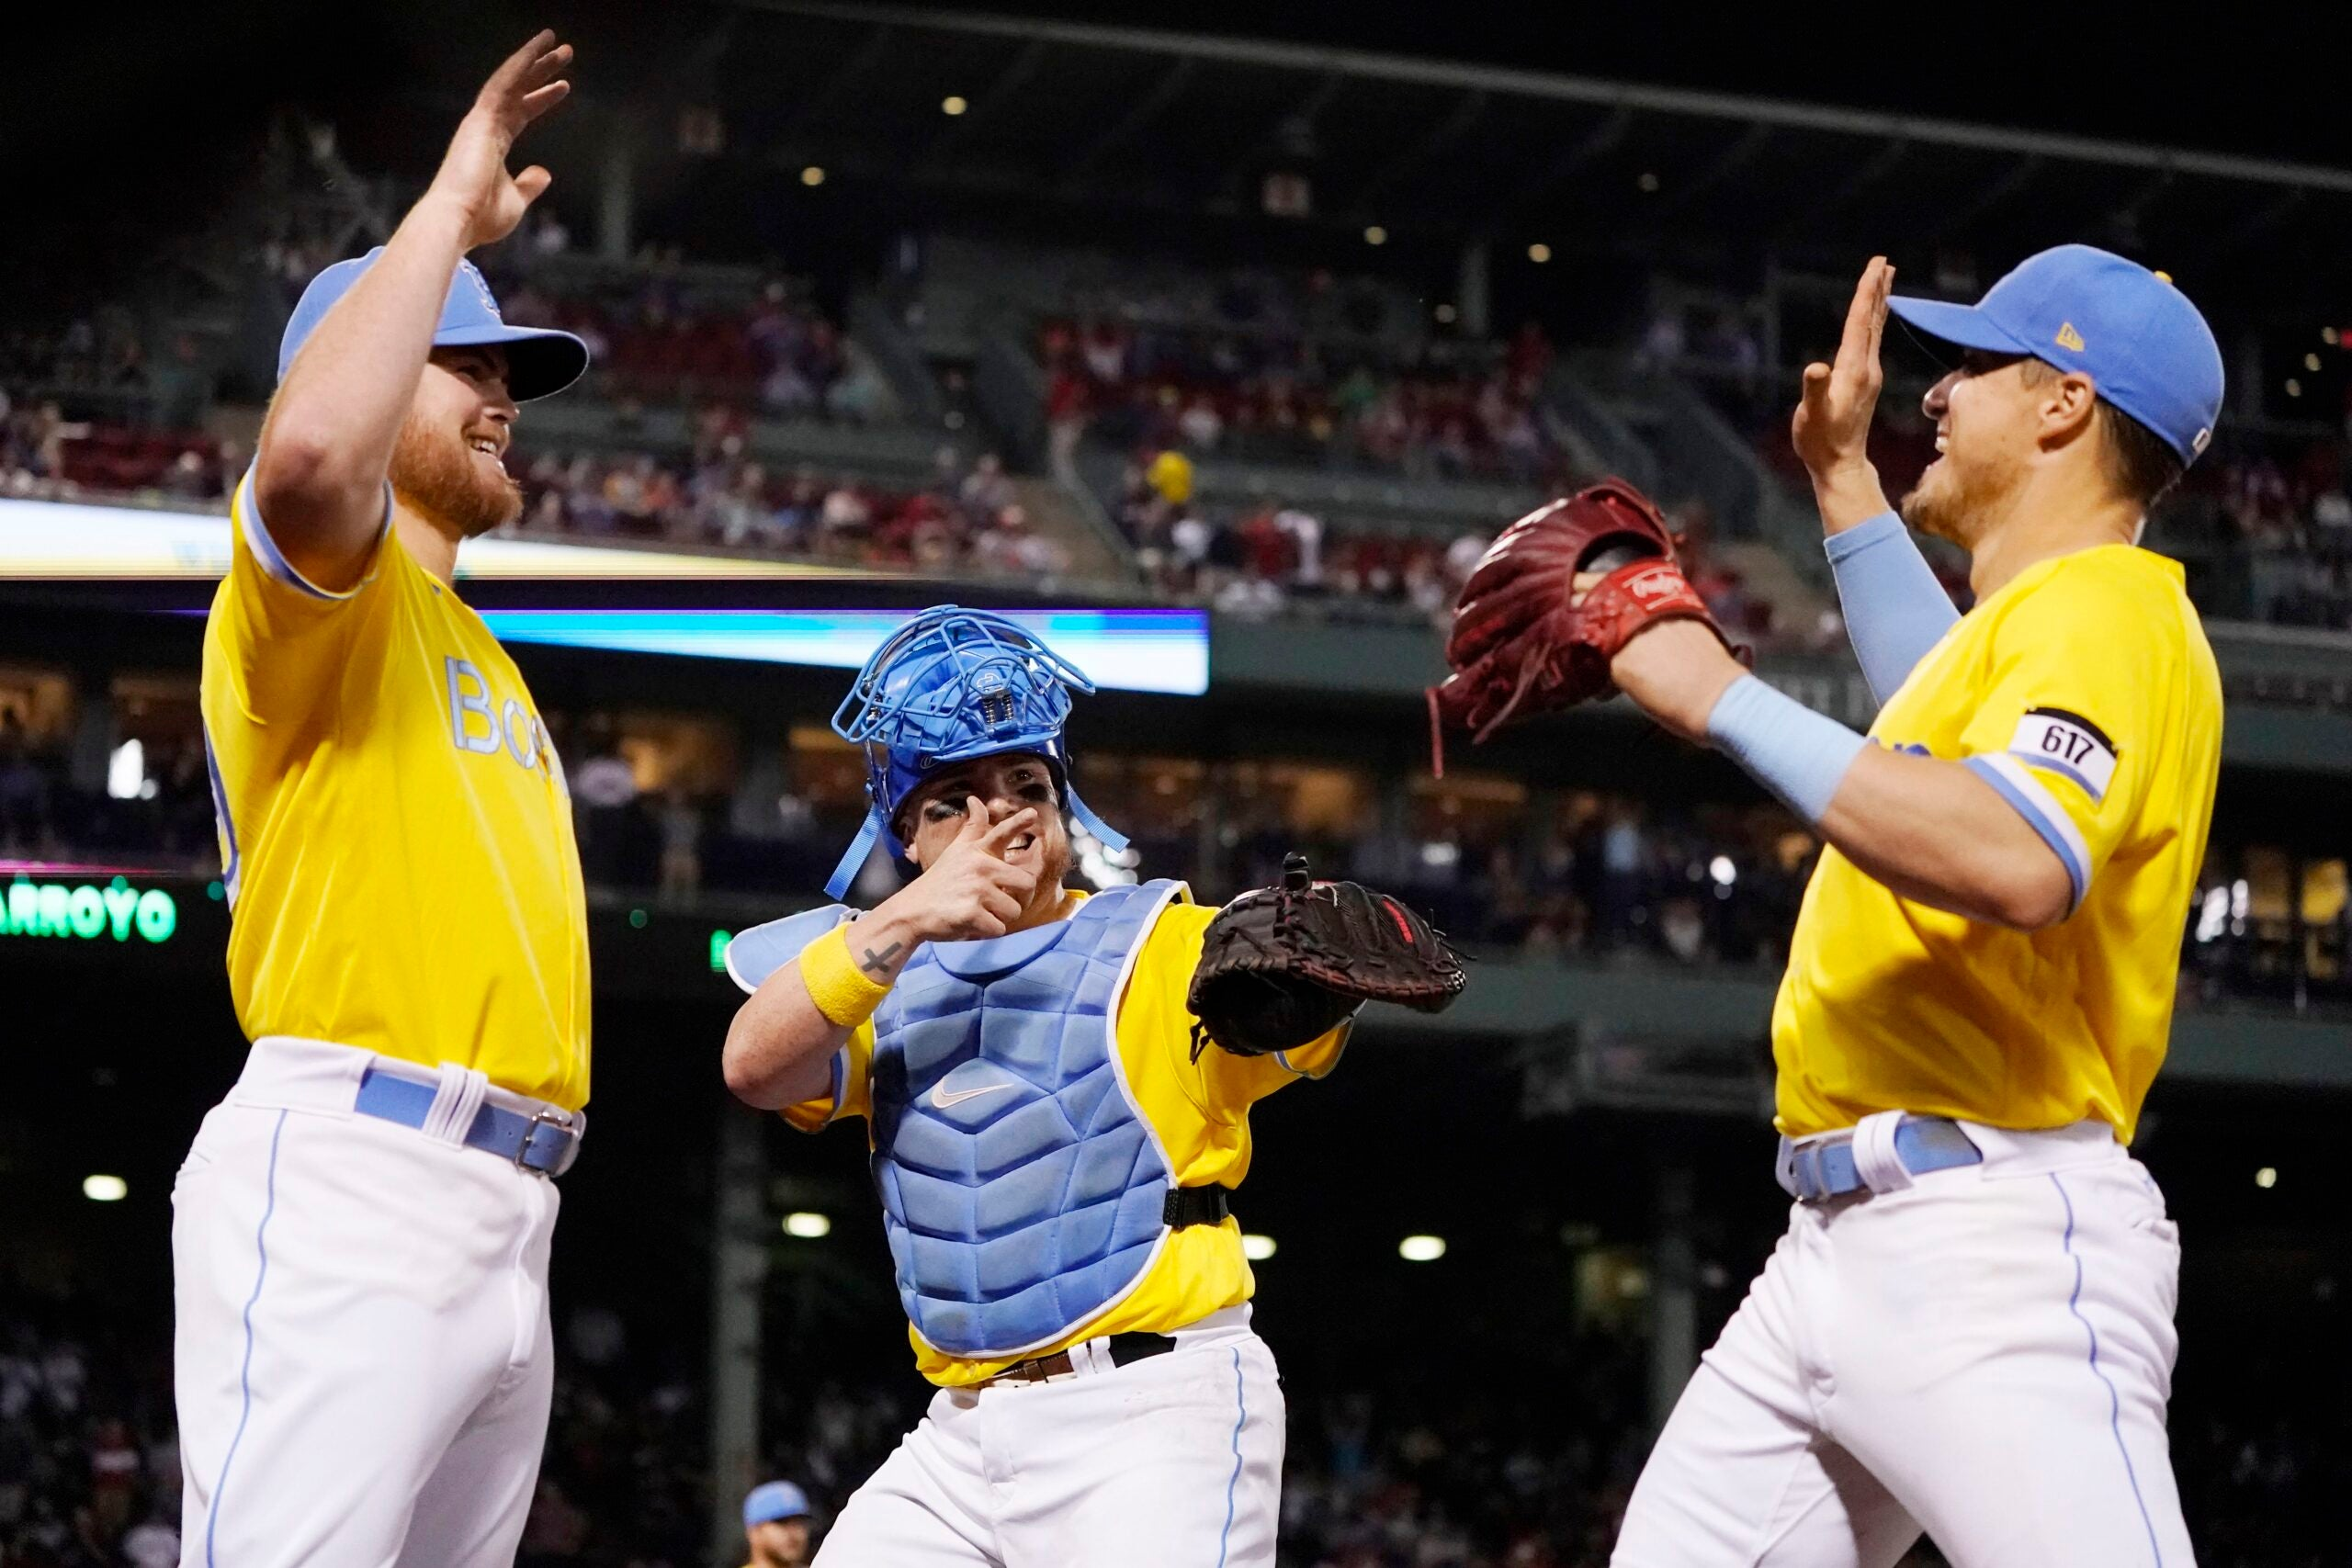 MLB green lights Red Sox' yellow jerseys for playoffs